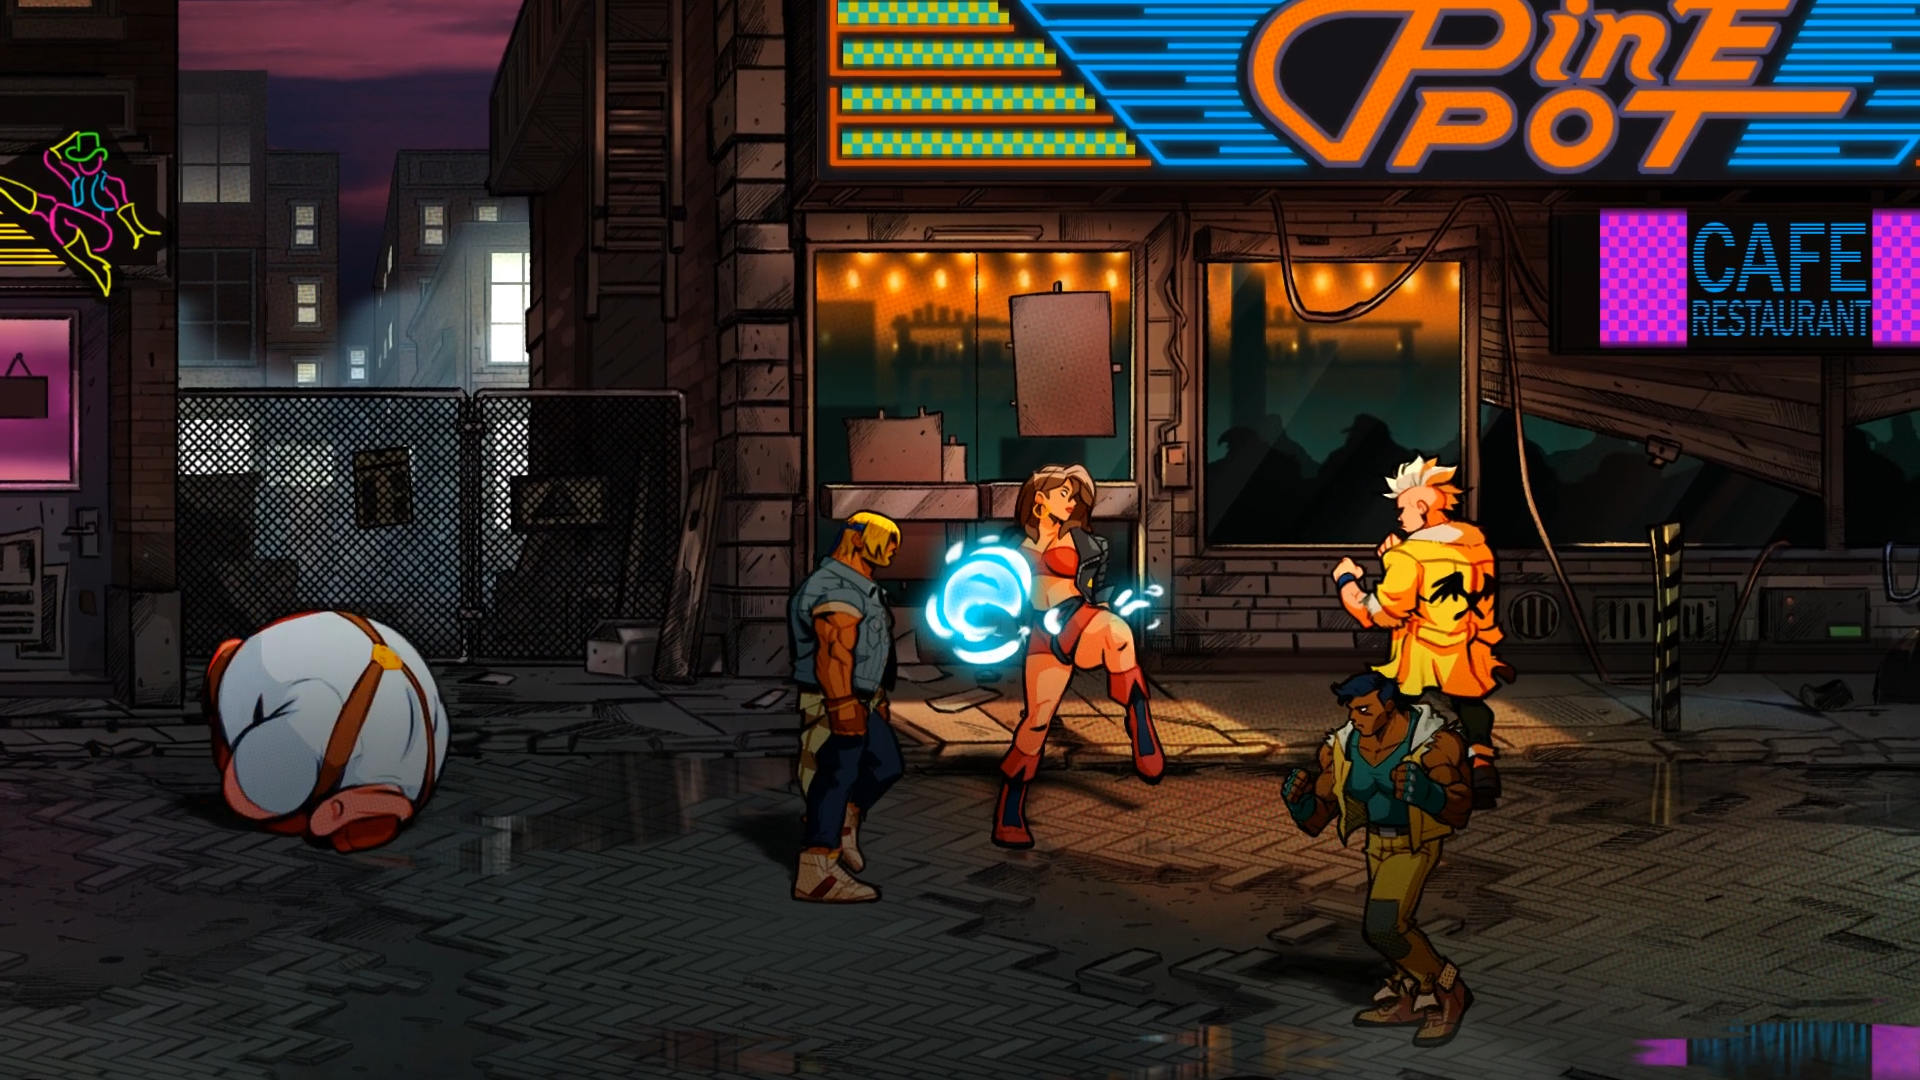 Streetsofrage4-0012 - Streets Of Rage 4 , HD Wallpaper & Backgrounds